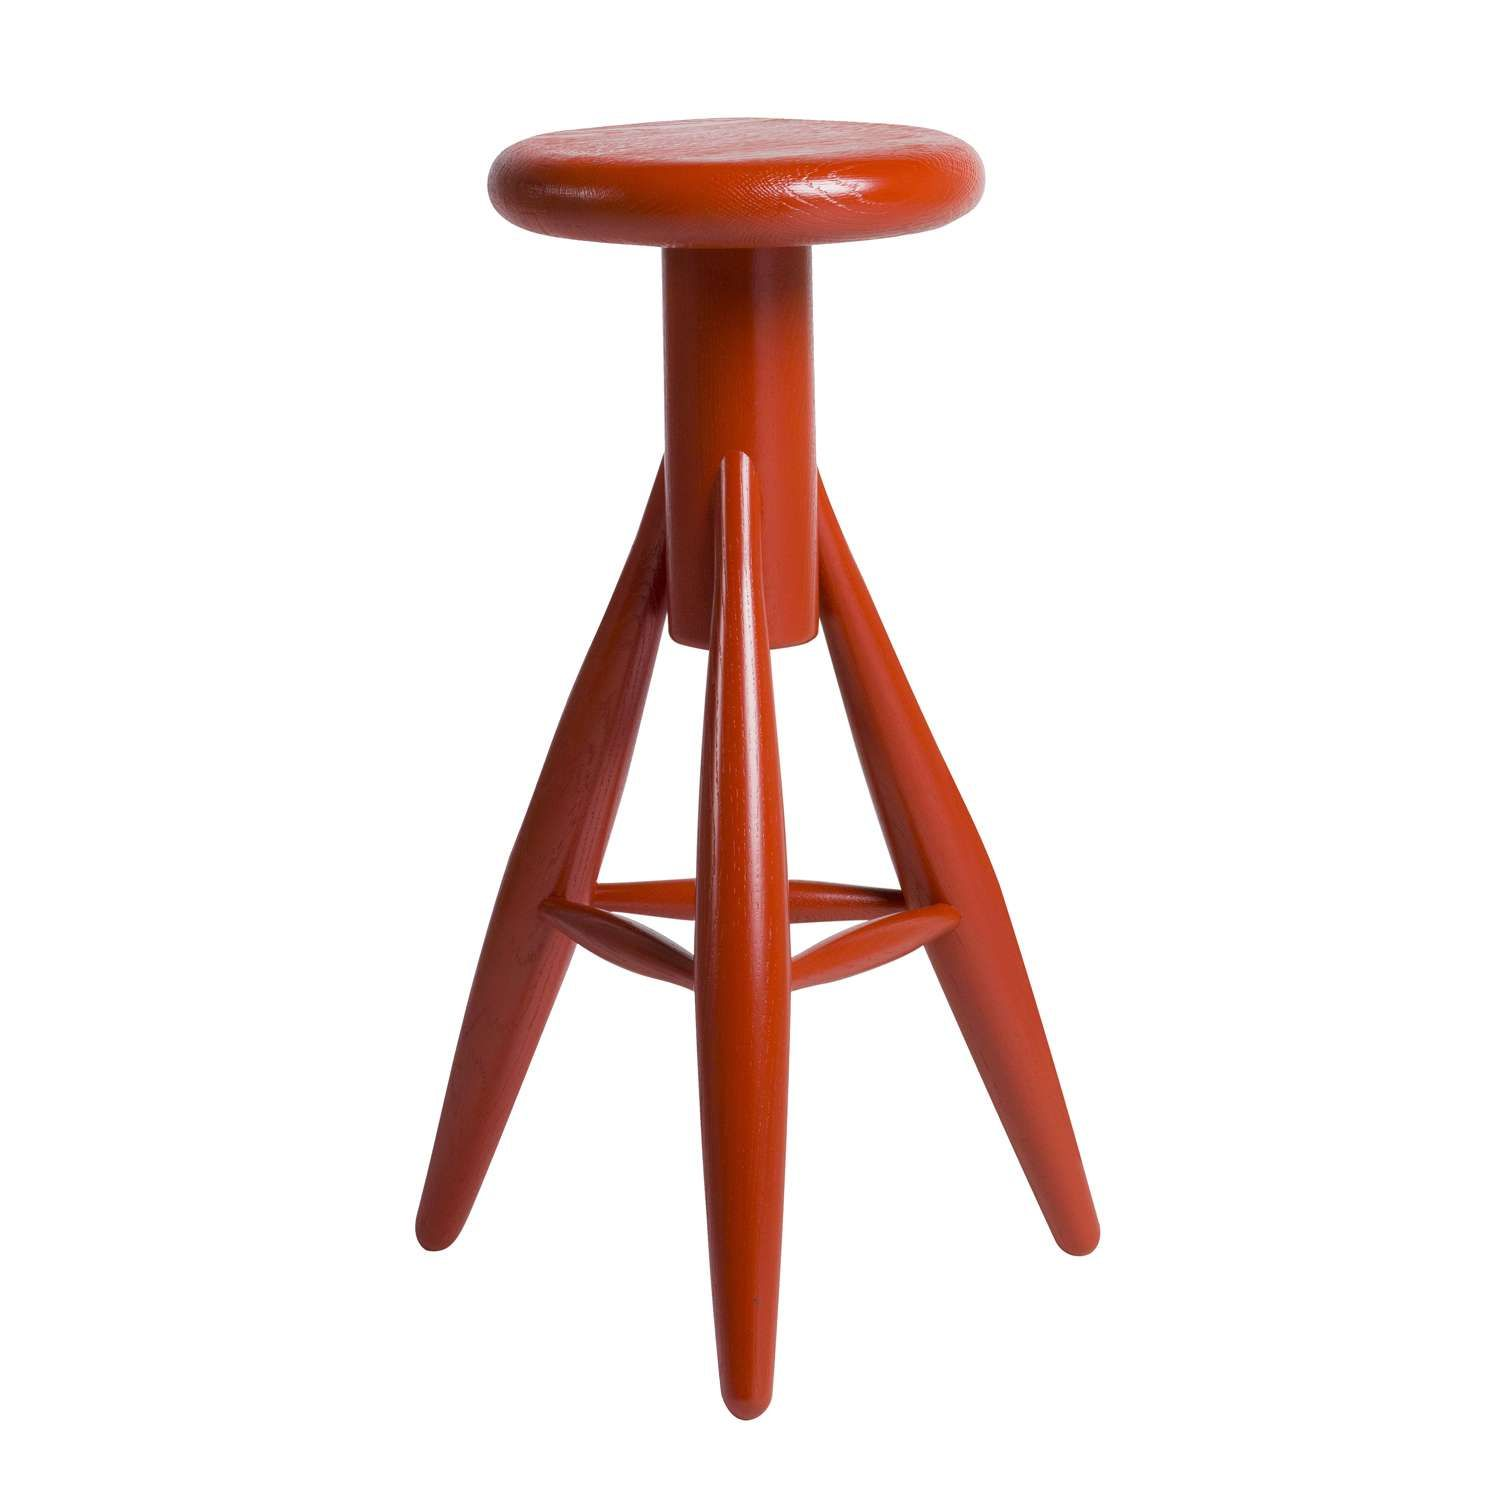 Rocket Stool Stools Ranges And Woods # Muebles Nay Tigre